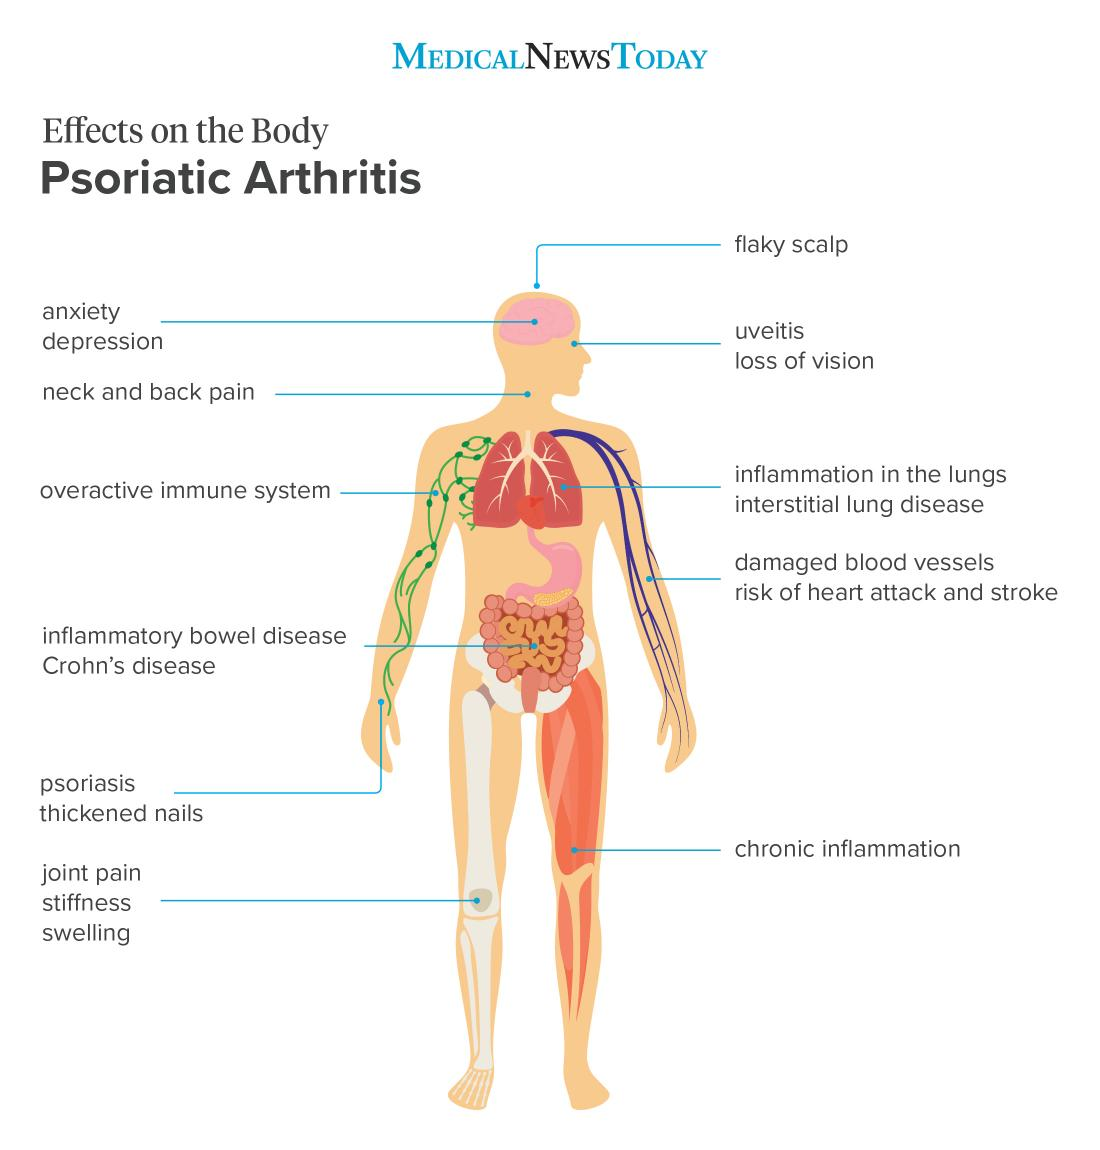 8 Effects Of Psoriatic Arthritis On The Body